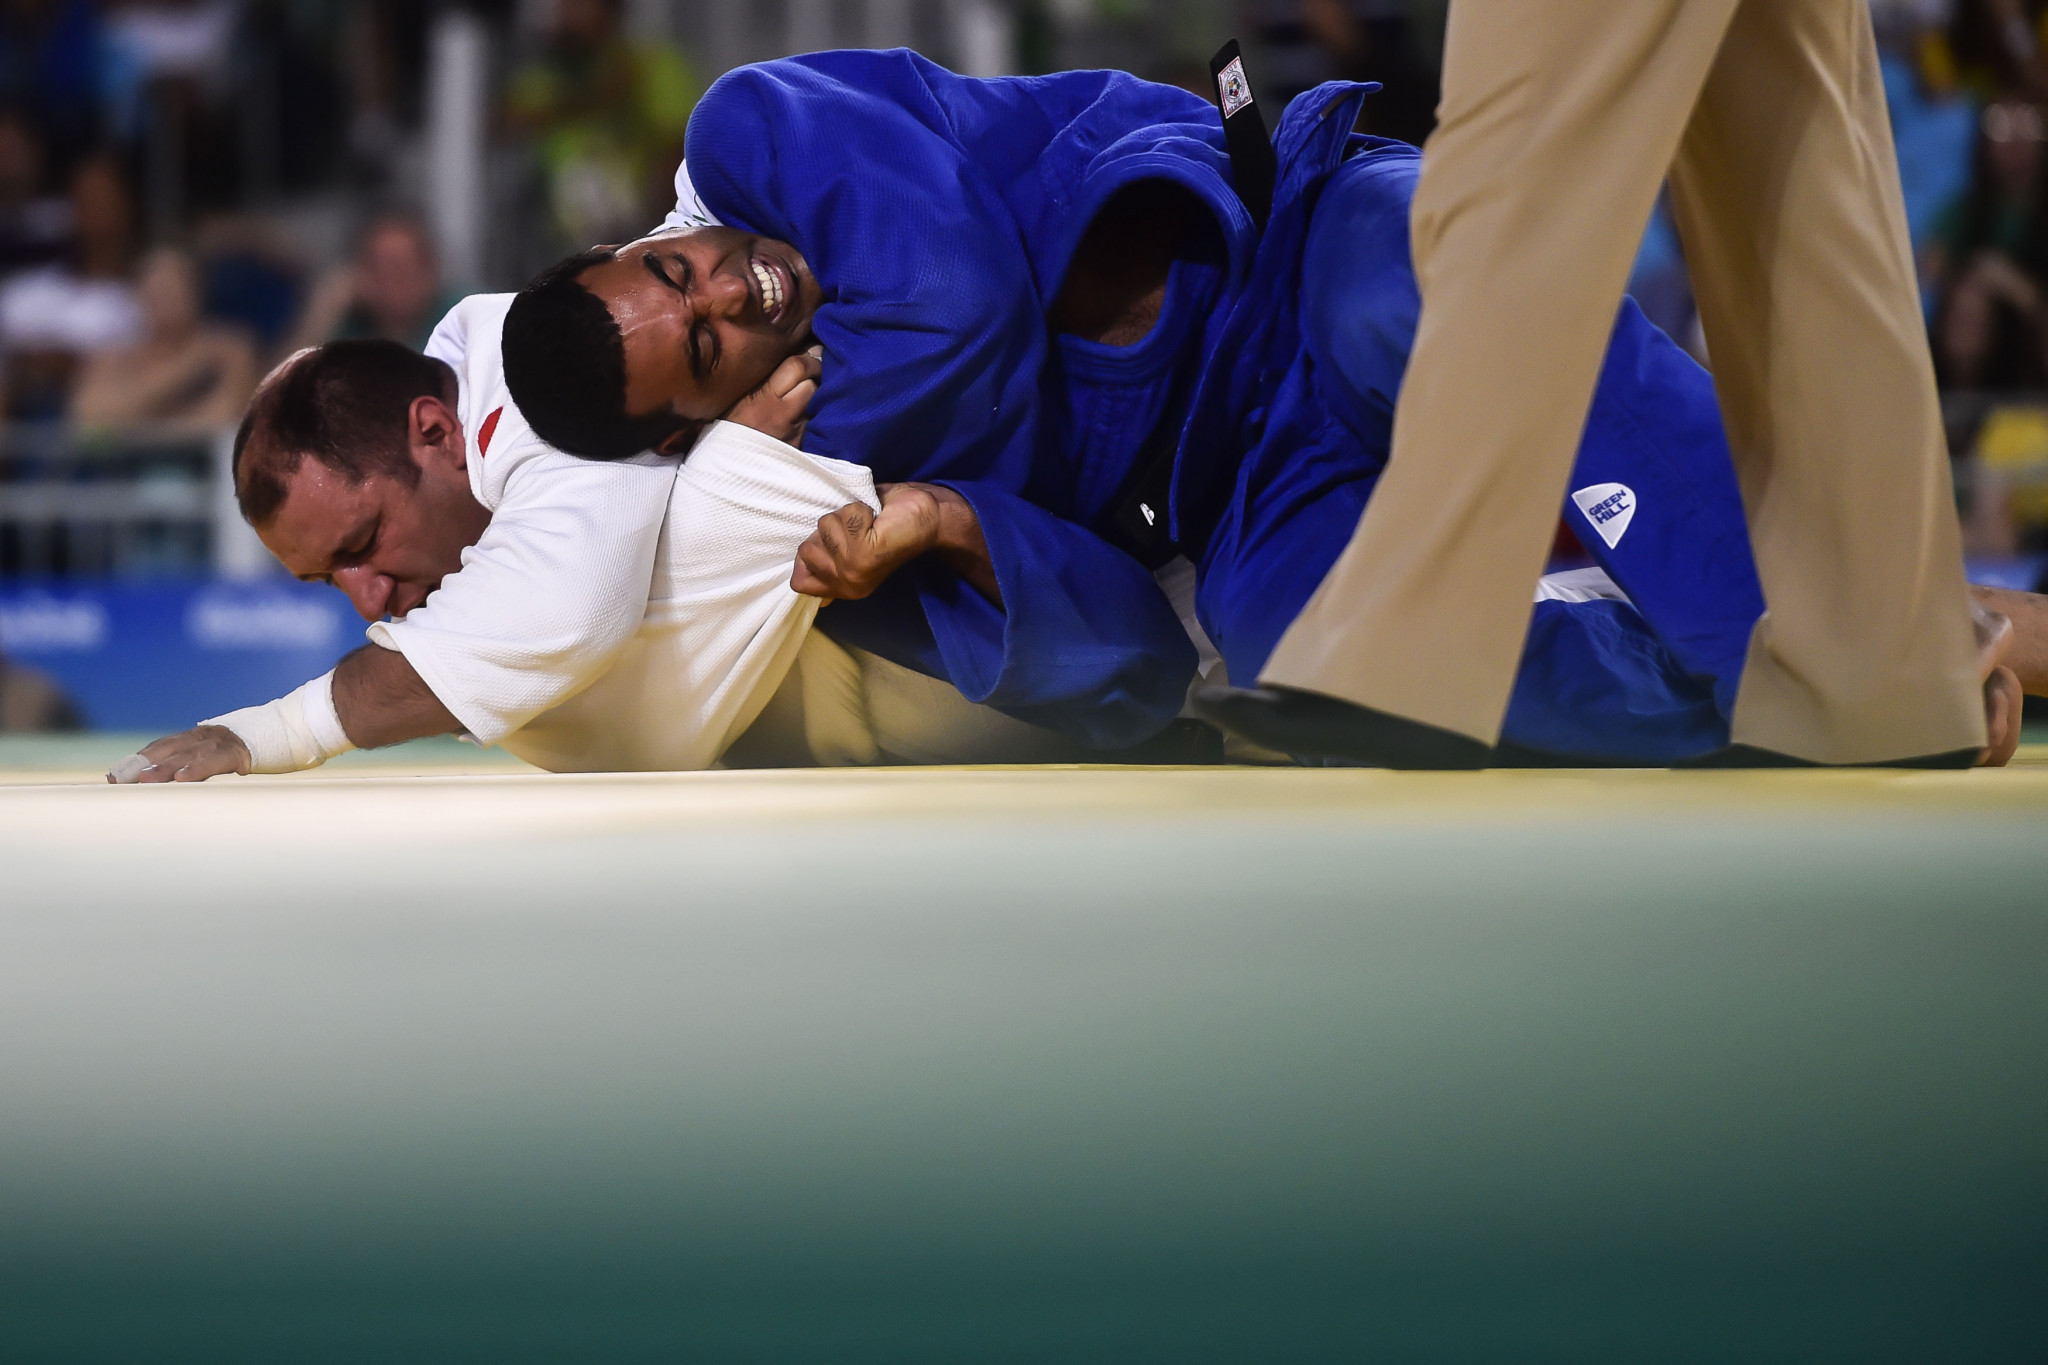 IBSA judo events set to resume with Azerbaijan Grand Prix in May